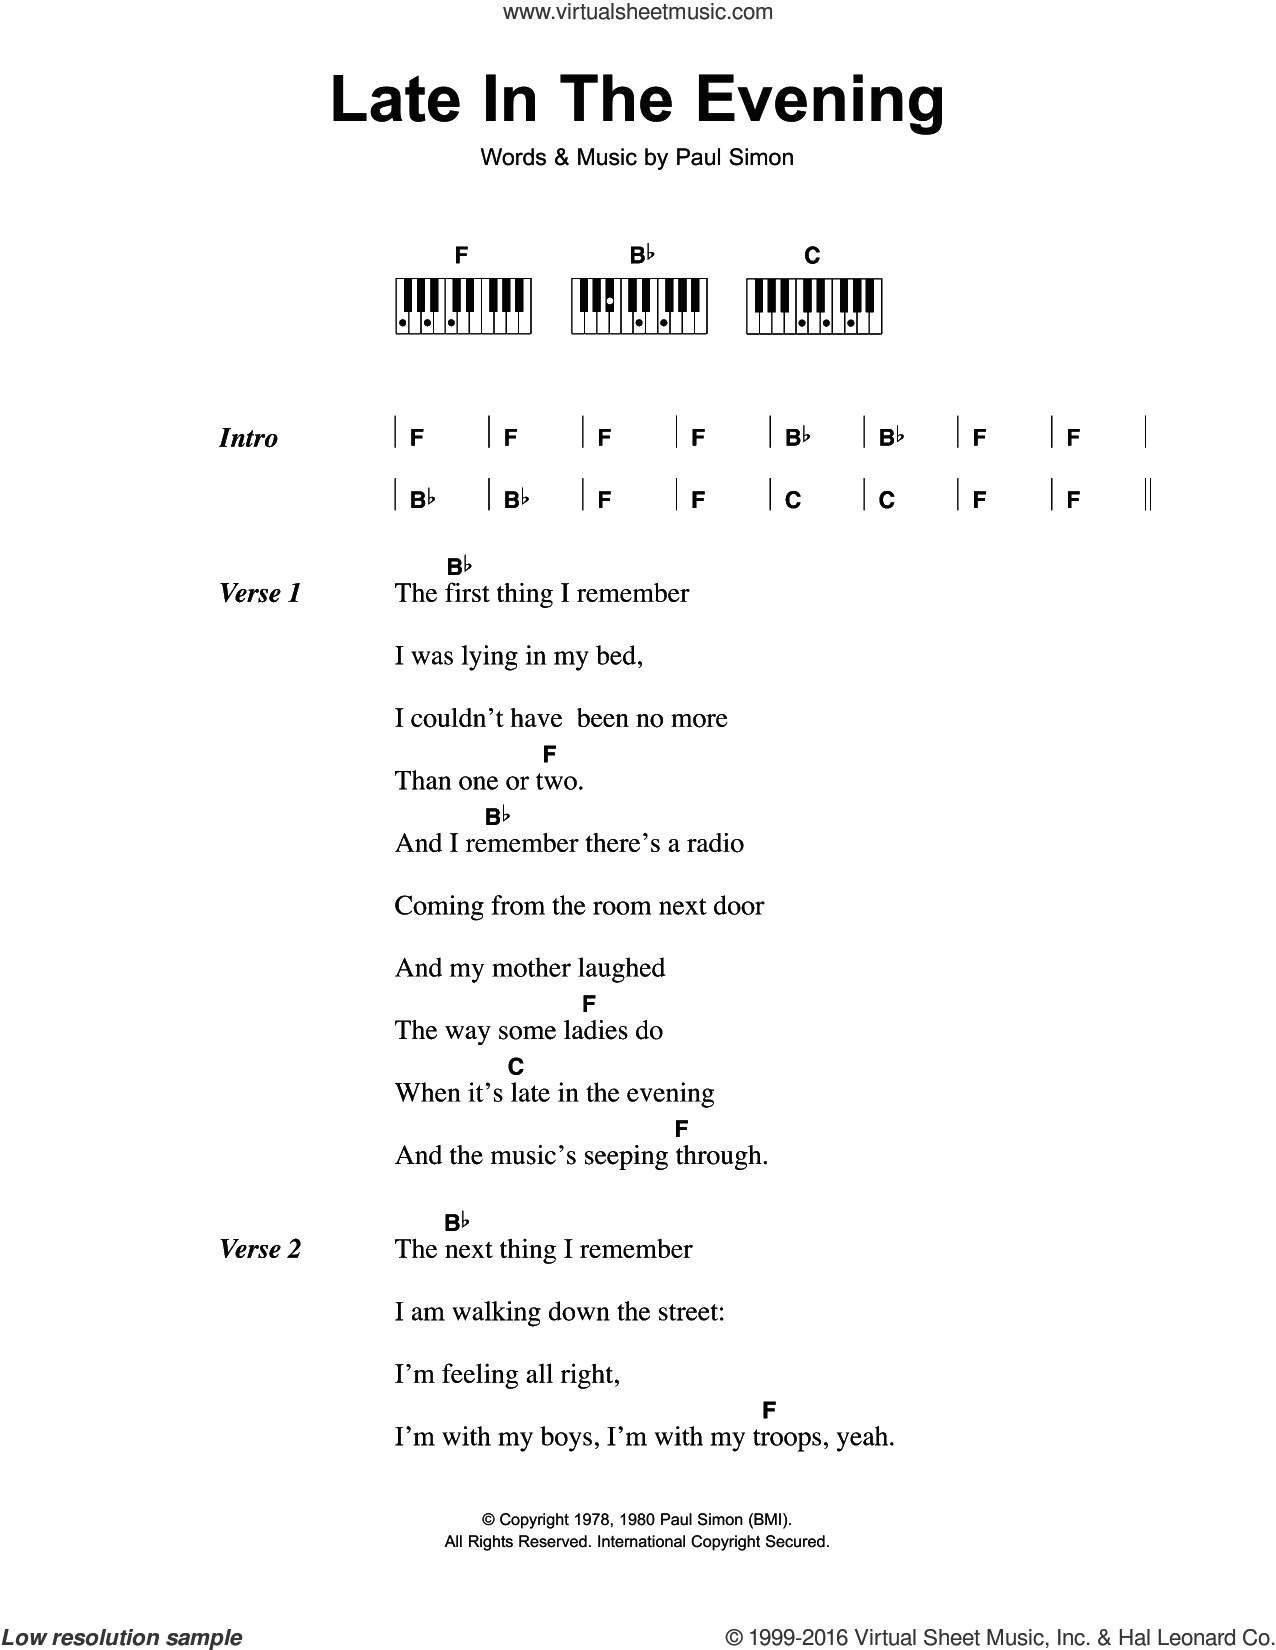 Late In The Evening sheet music for piano solo (chords, lyrics, melody) by Paul Simon